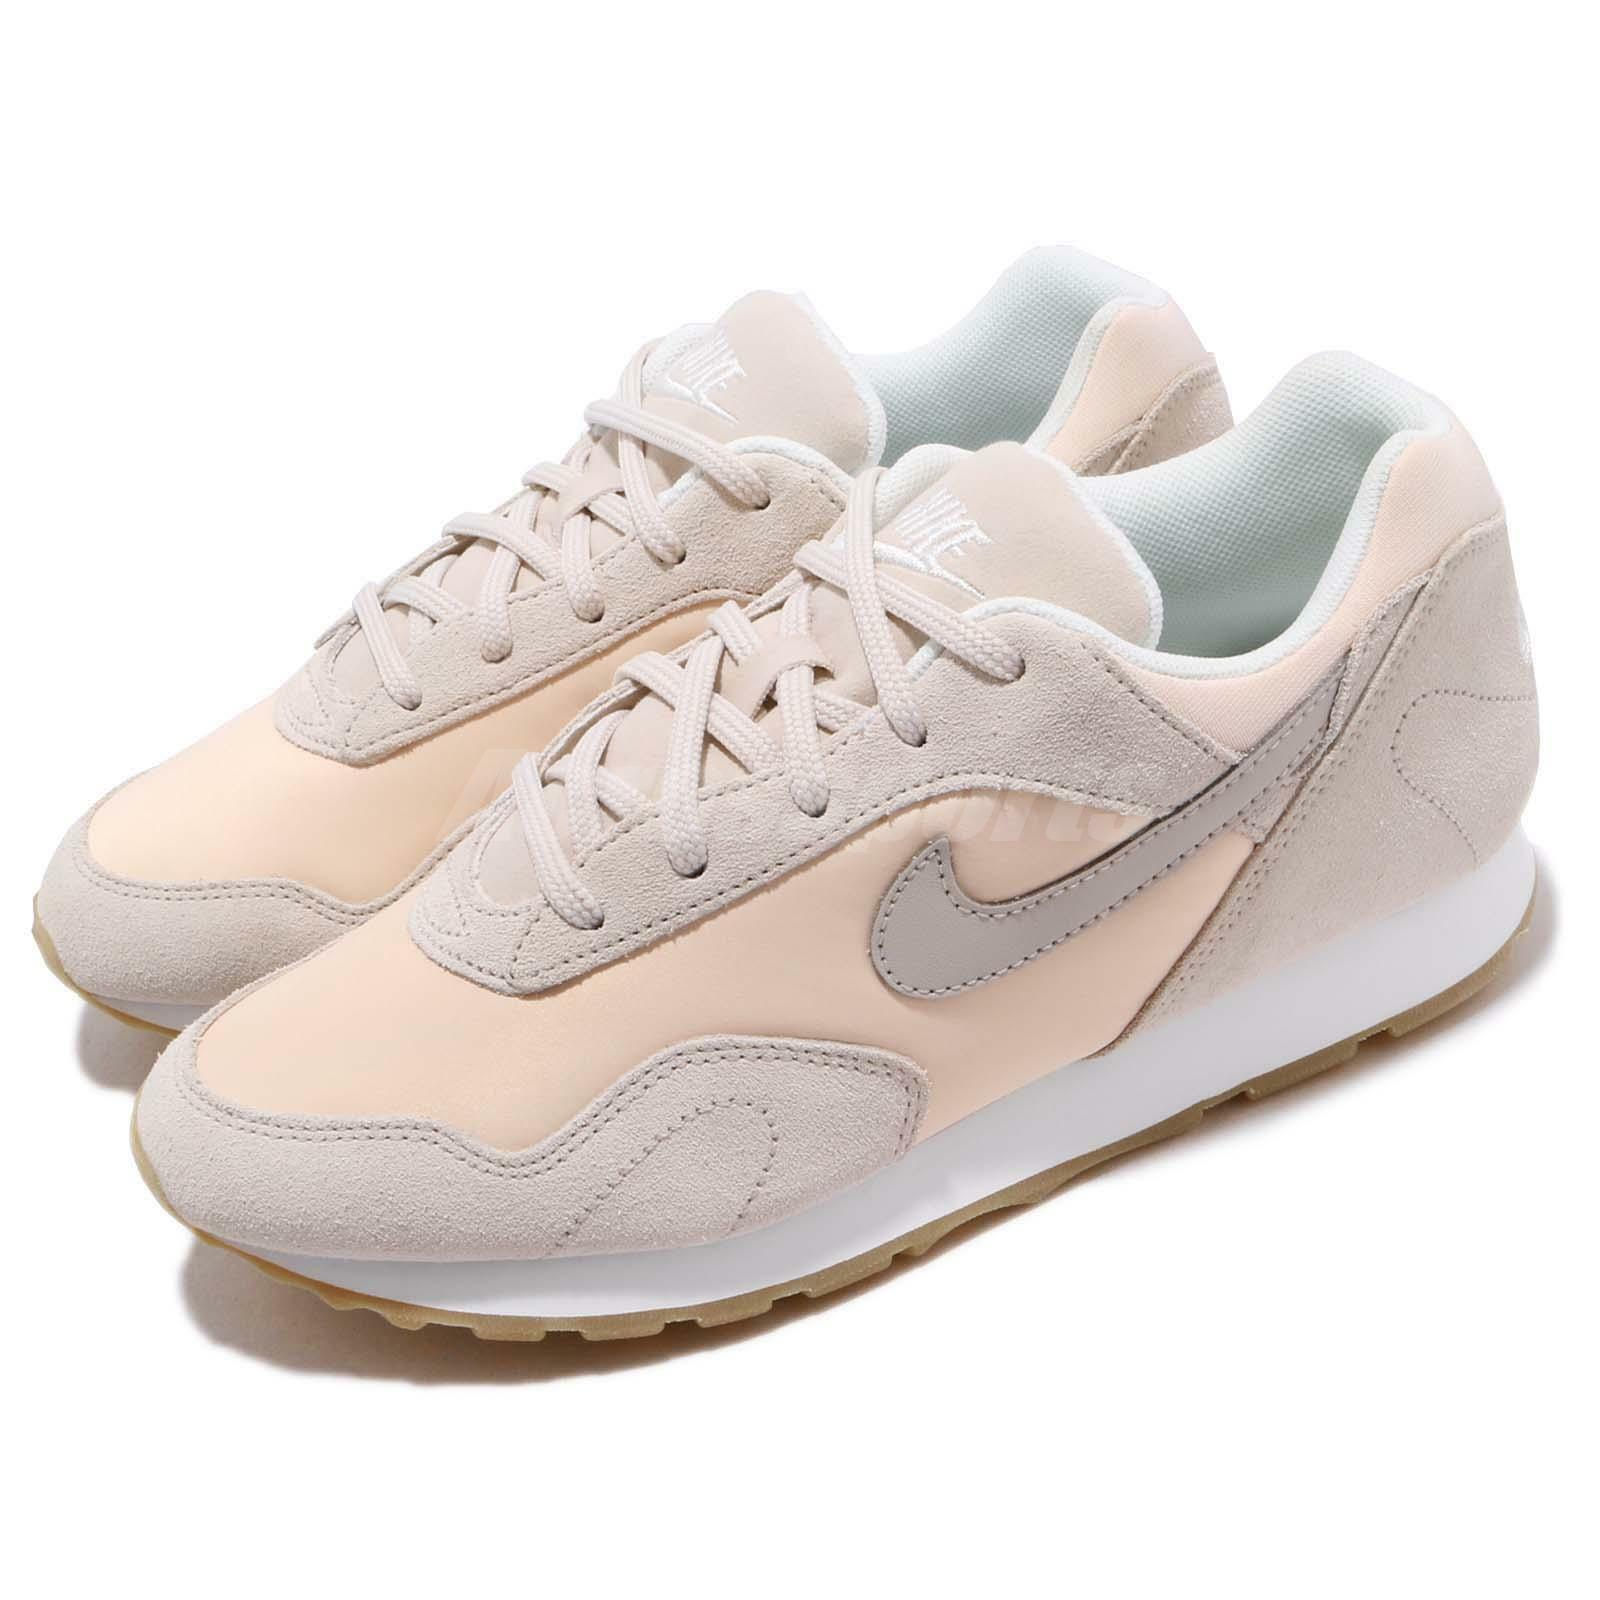 Nike Wmns Outburst orange Quartz Desert  Sand Gum Women Running shoes AO1069-800  inexpensive